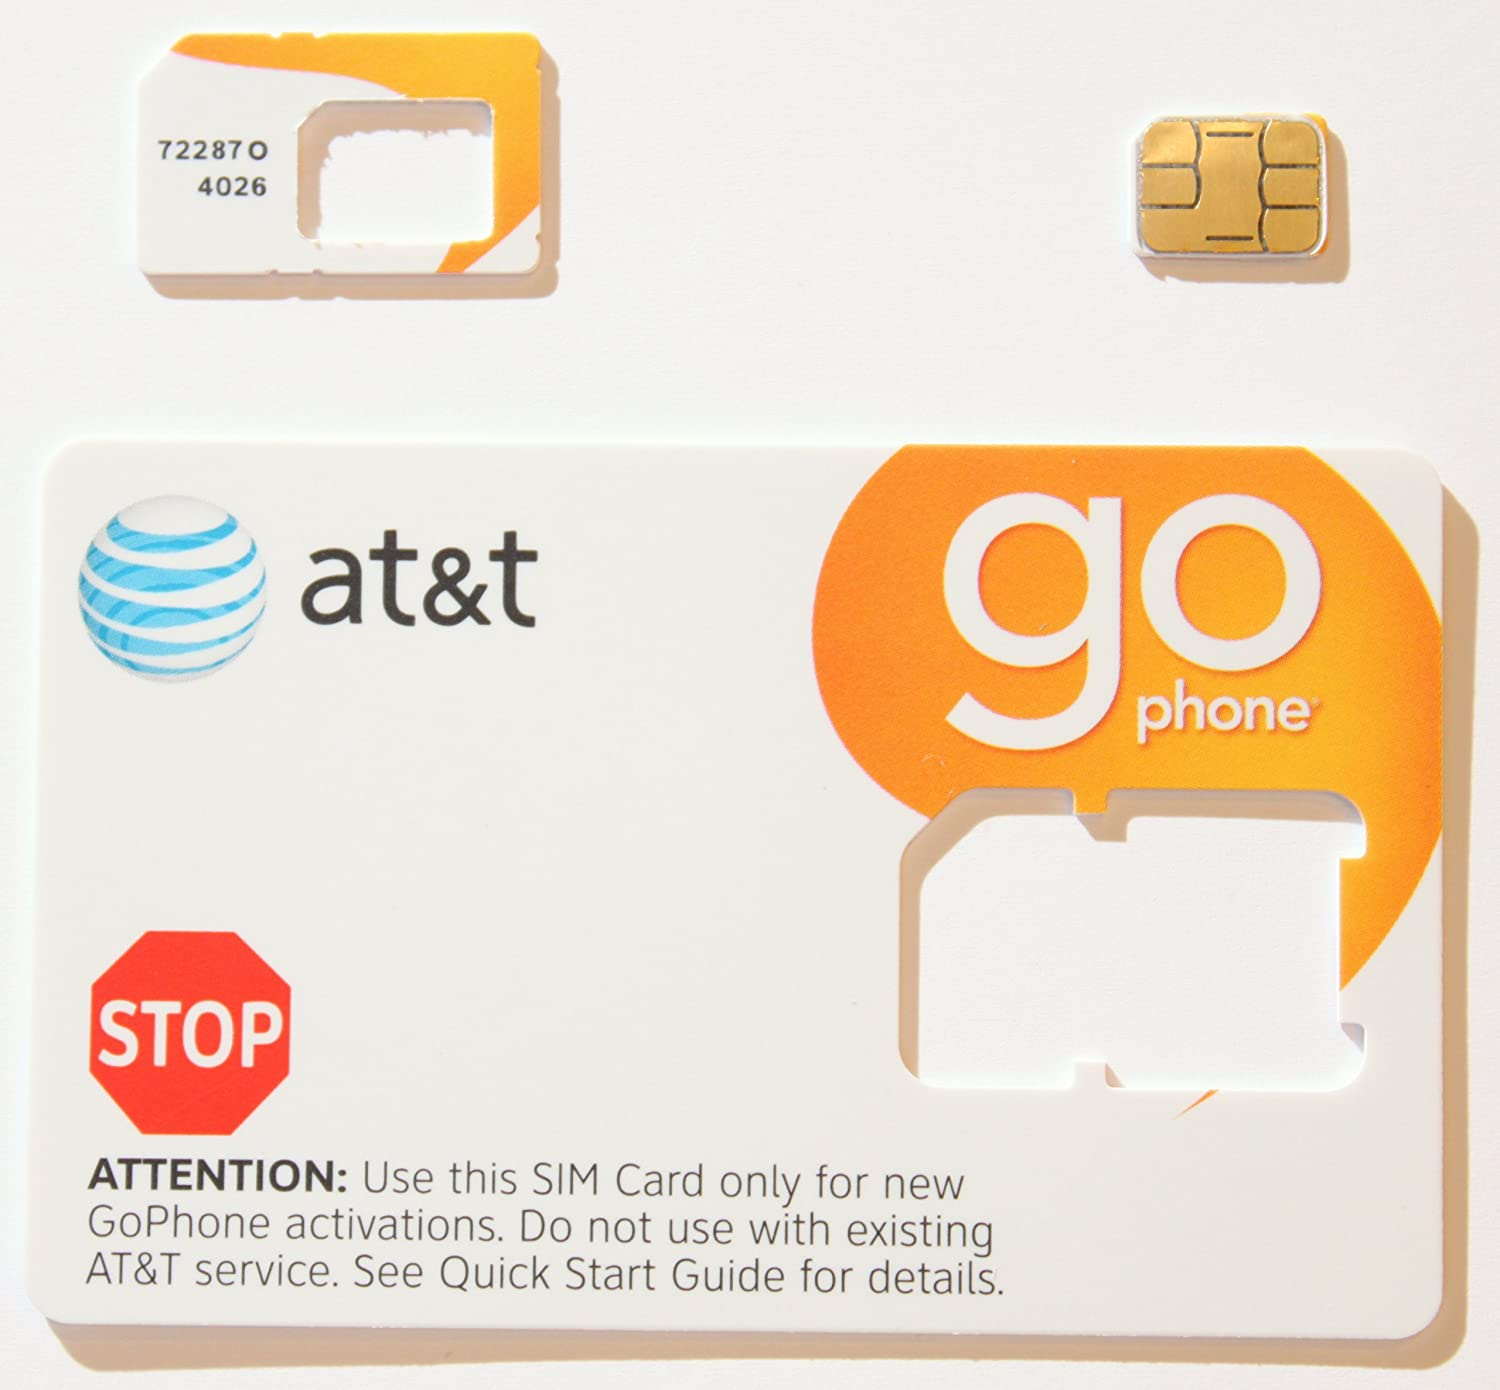 Amazon.com: At & t go-phone tarjeta de corte para ...